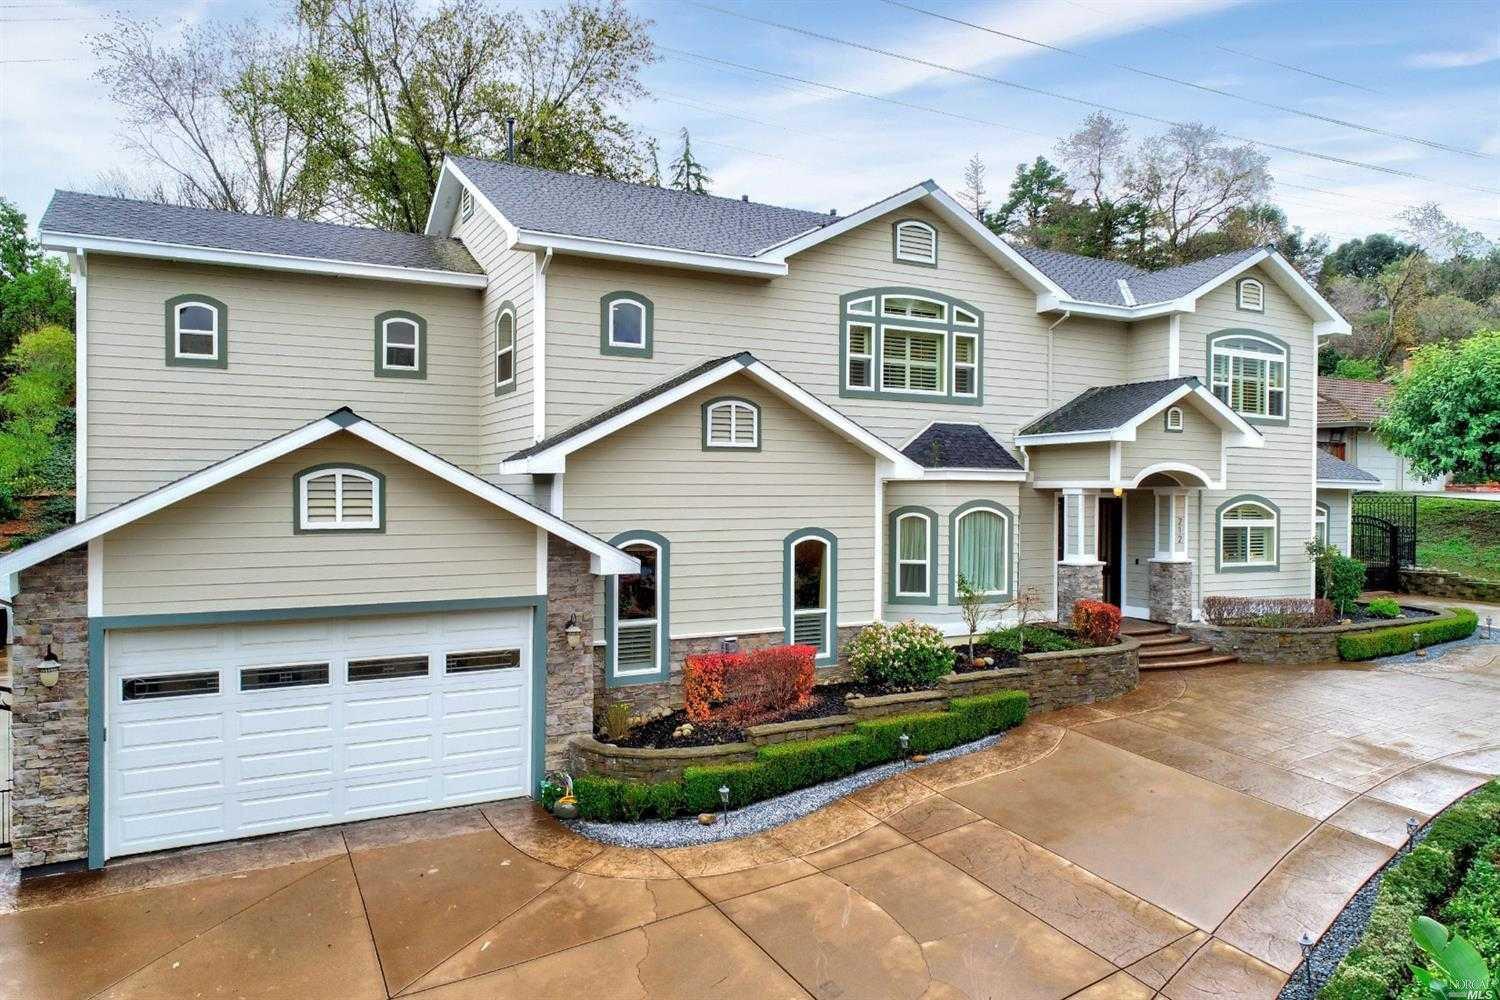 $1,150,000 - 5Br/4Ba -  for Sale in Vacaville